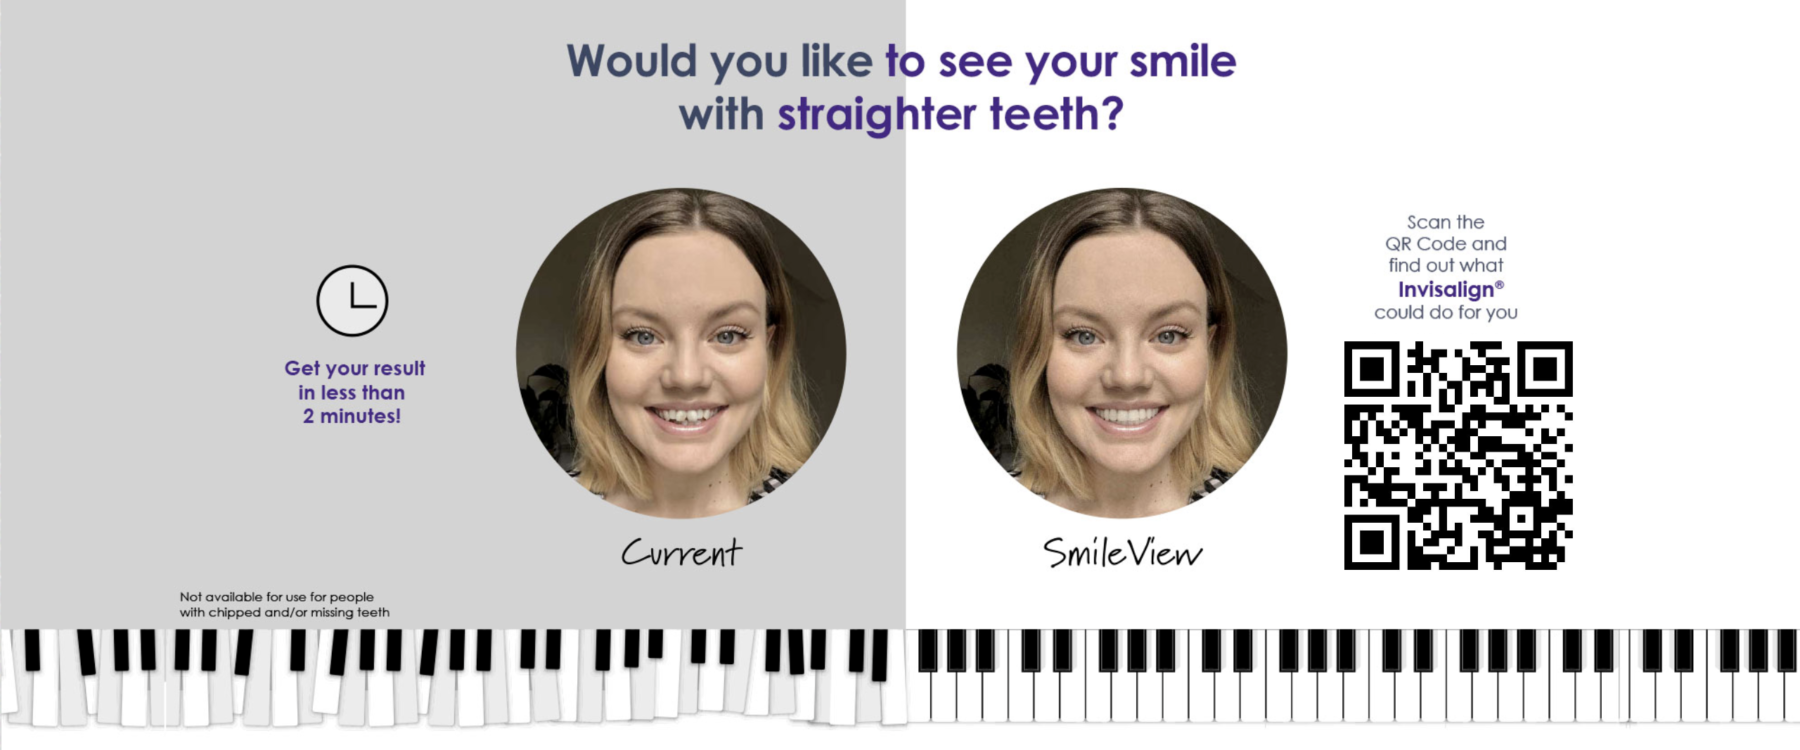 Find out if Invisalign could help straighten your teeth